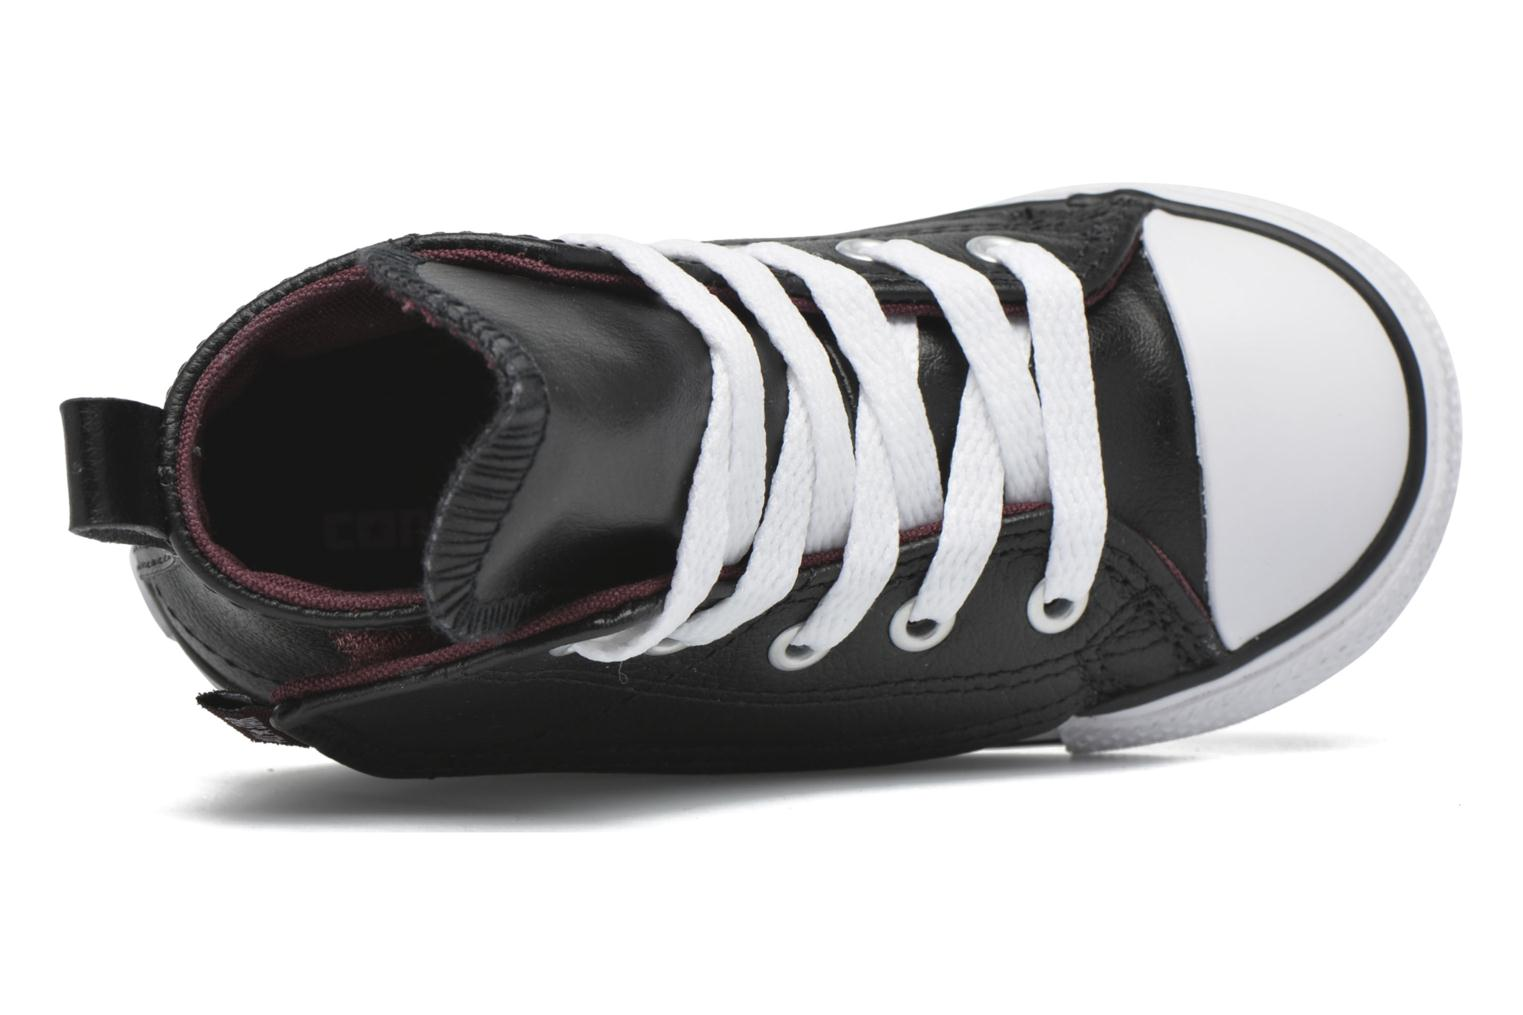 Chuck Taylor All Star Simple Step Hi Black/Bordeaux/White